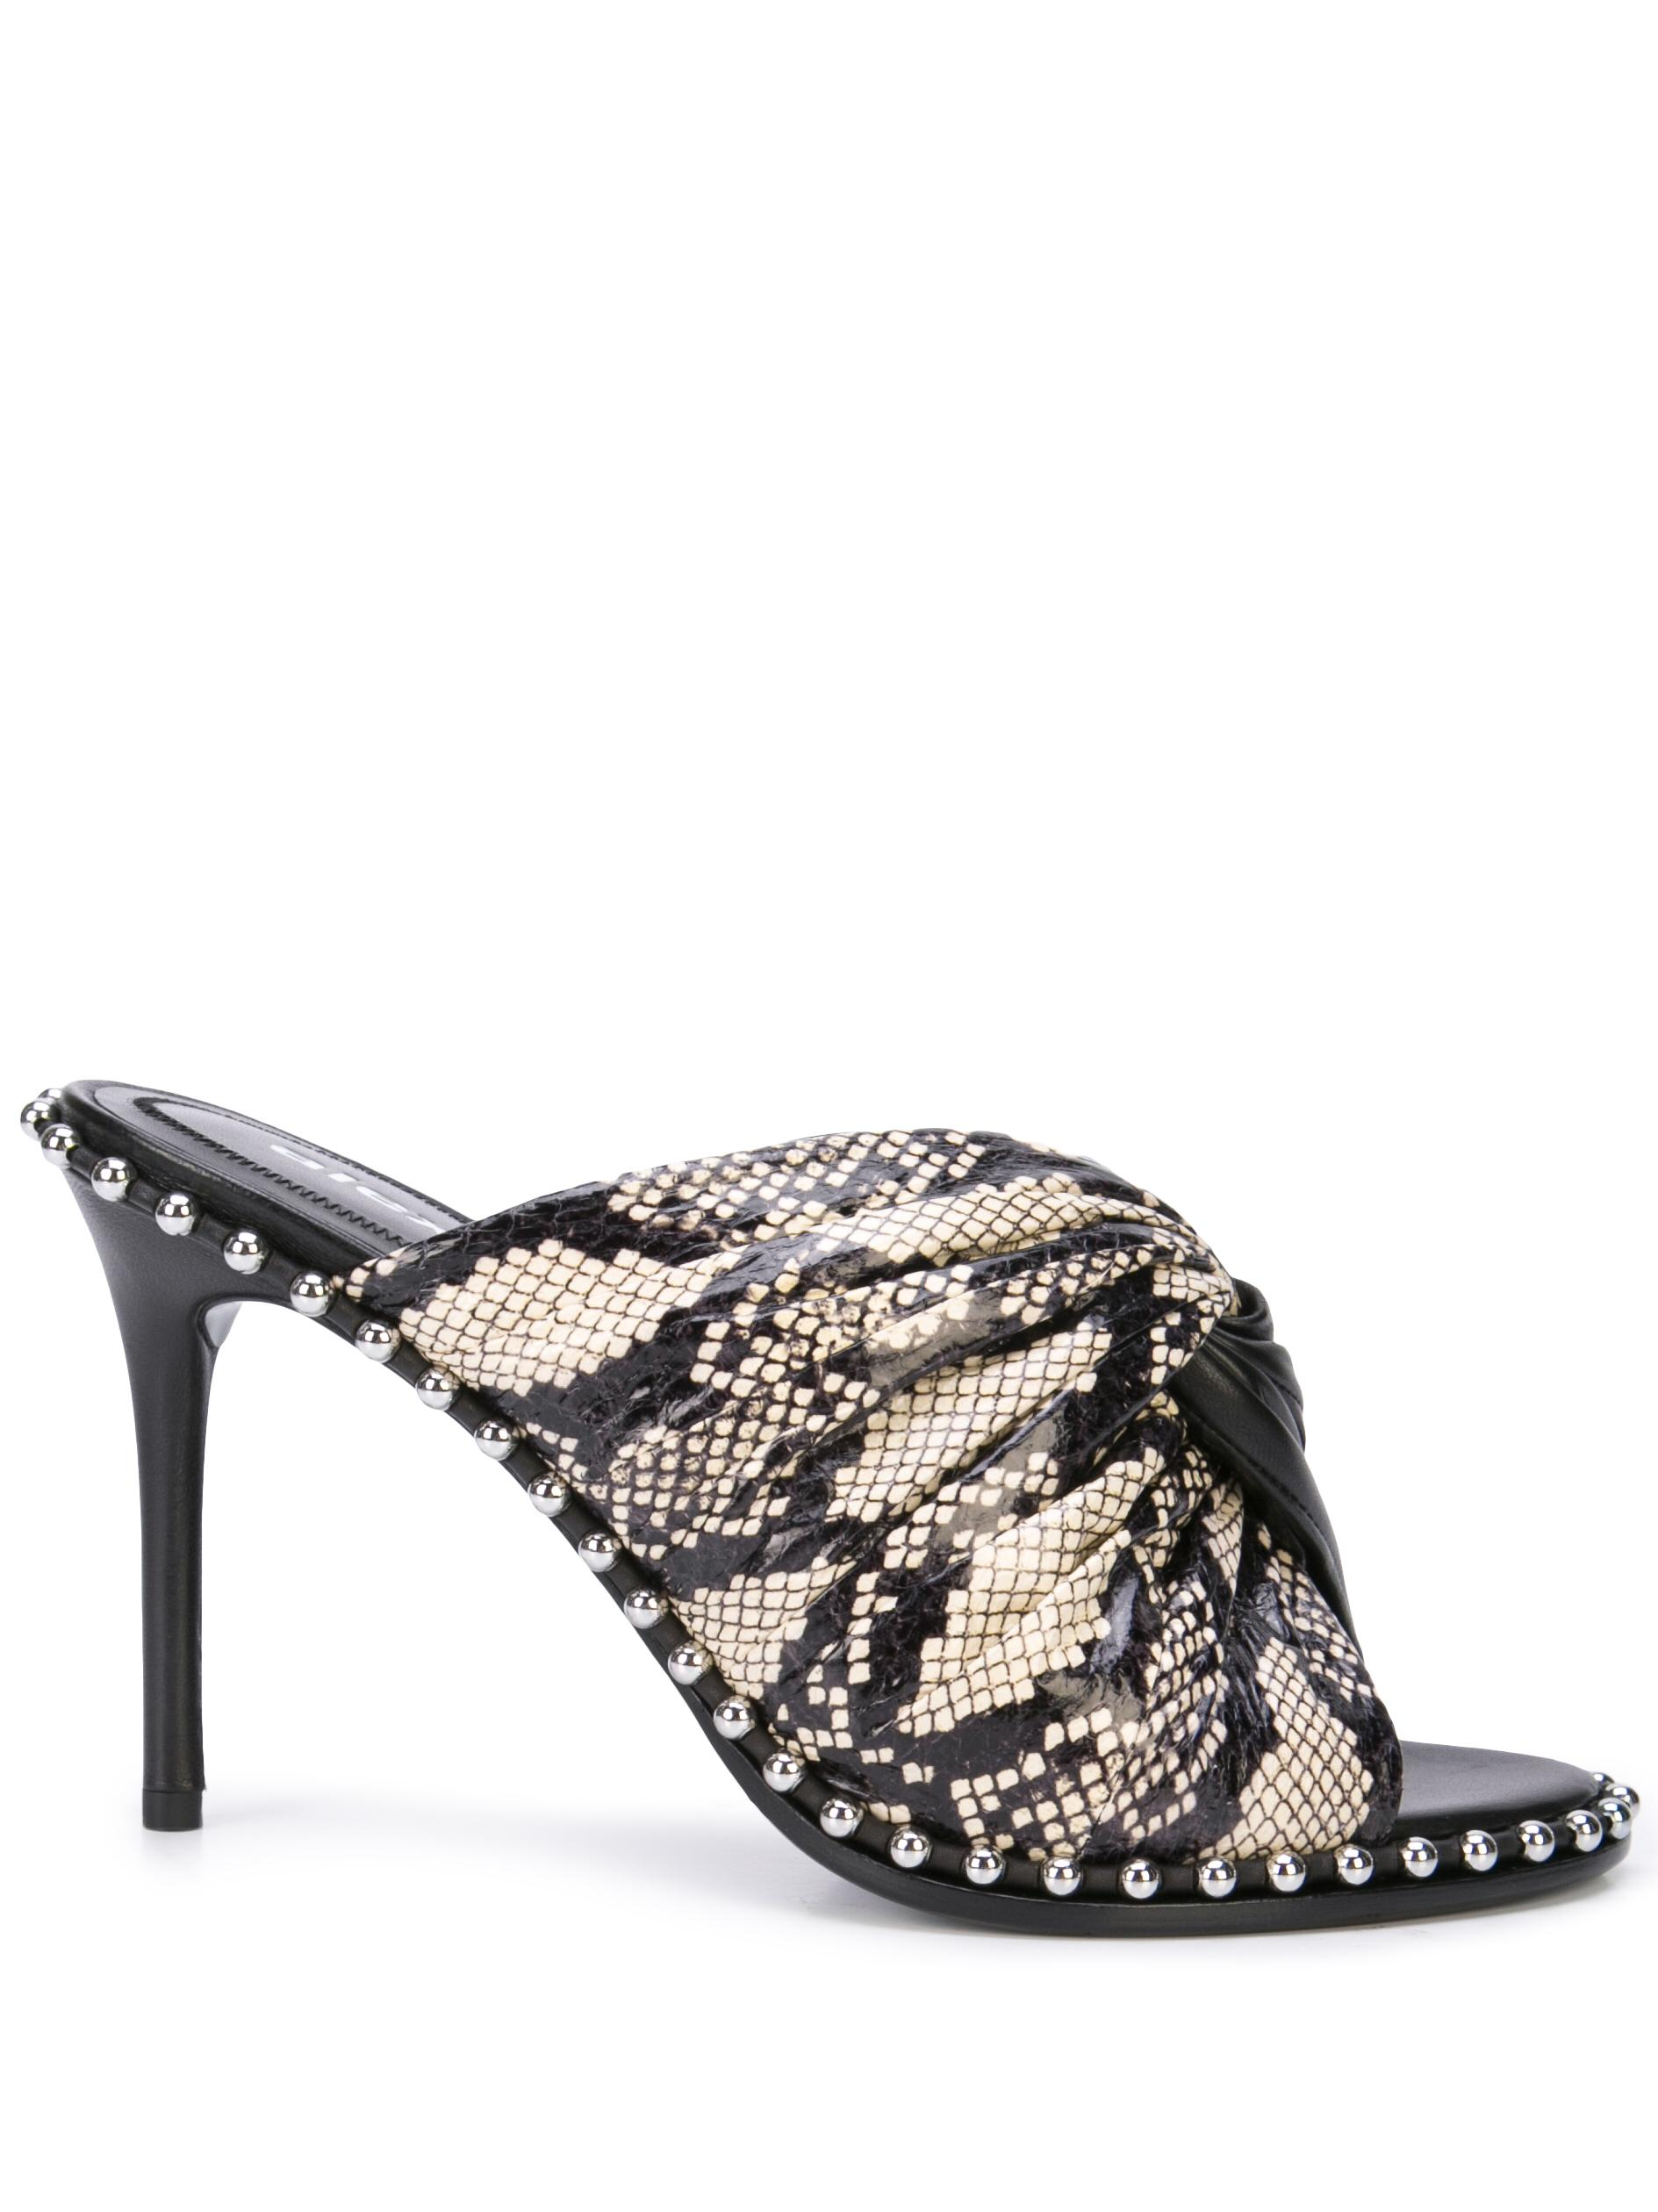 Nappa/Snake Embossed High Heel Mule